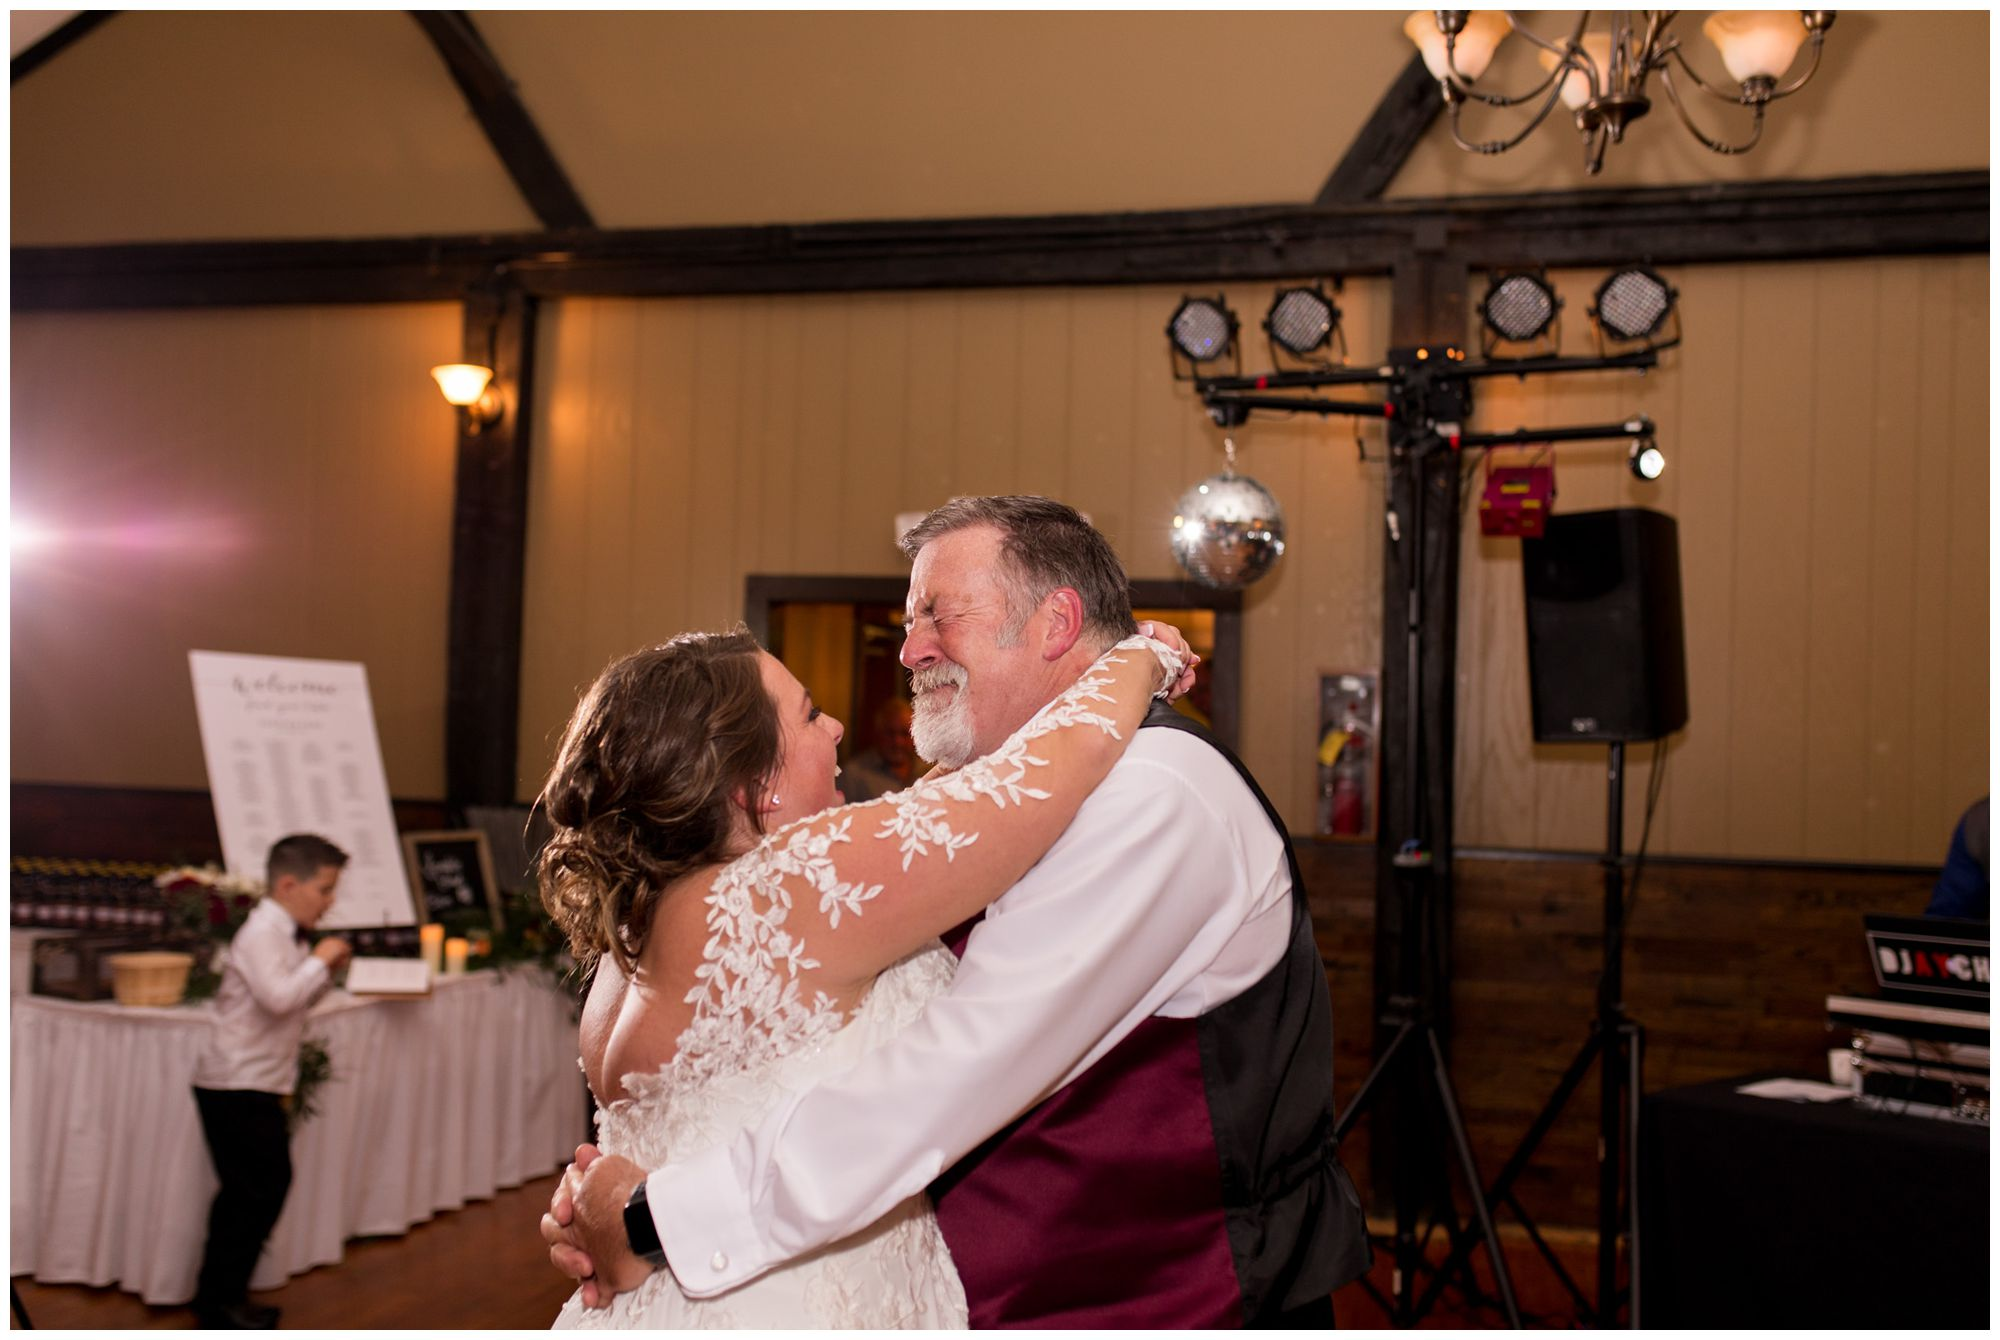 bride and father dance during reception at Goeglein Homestead in Fort Wayne